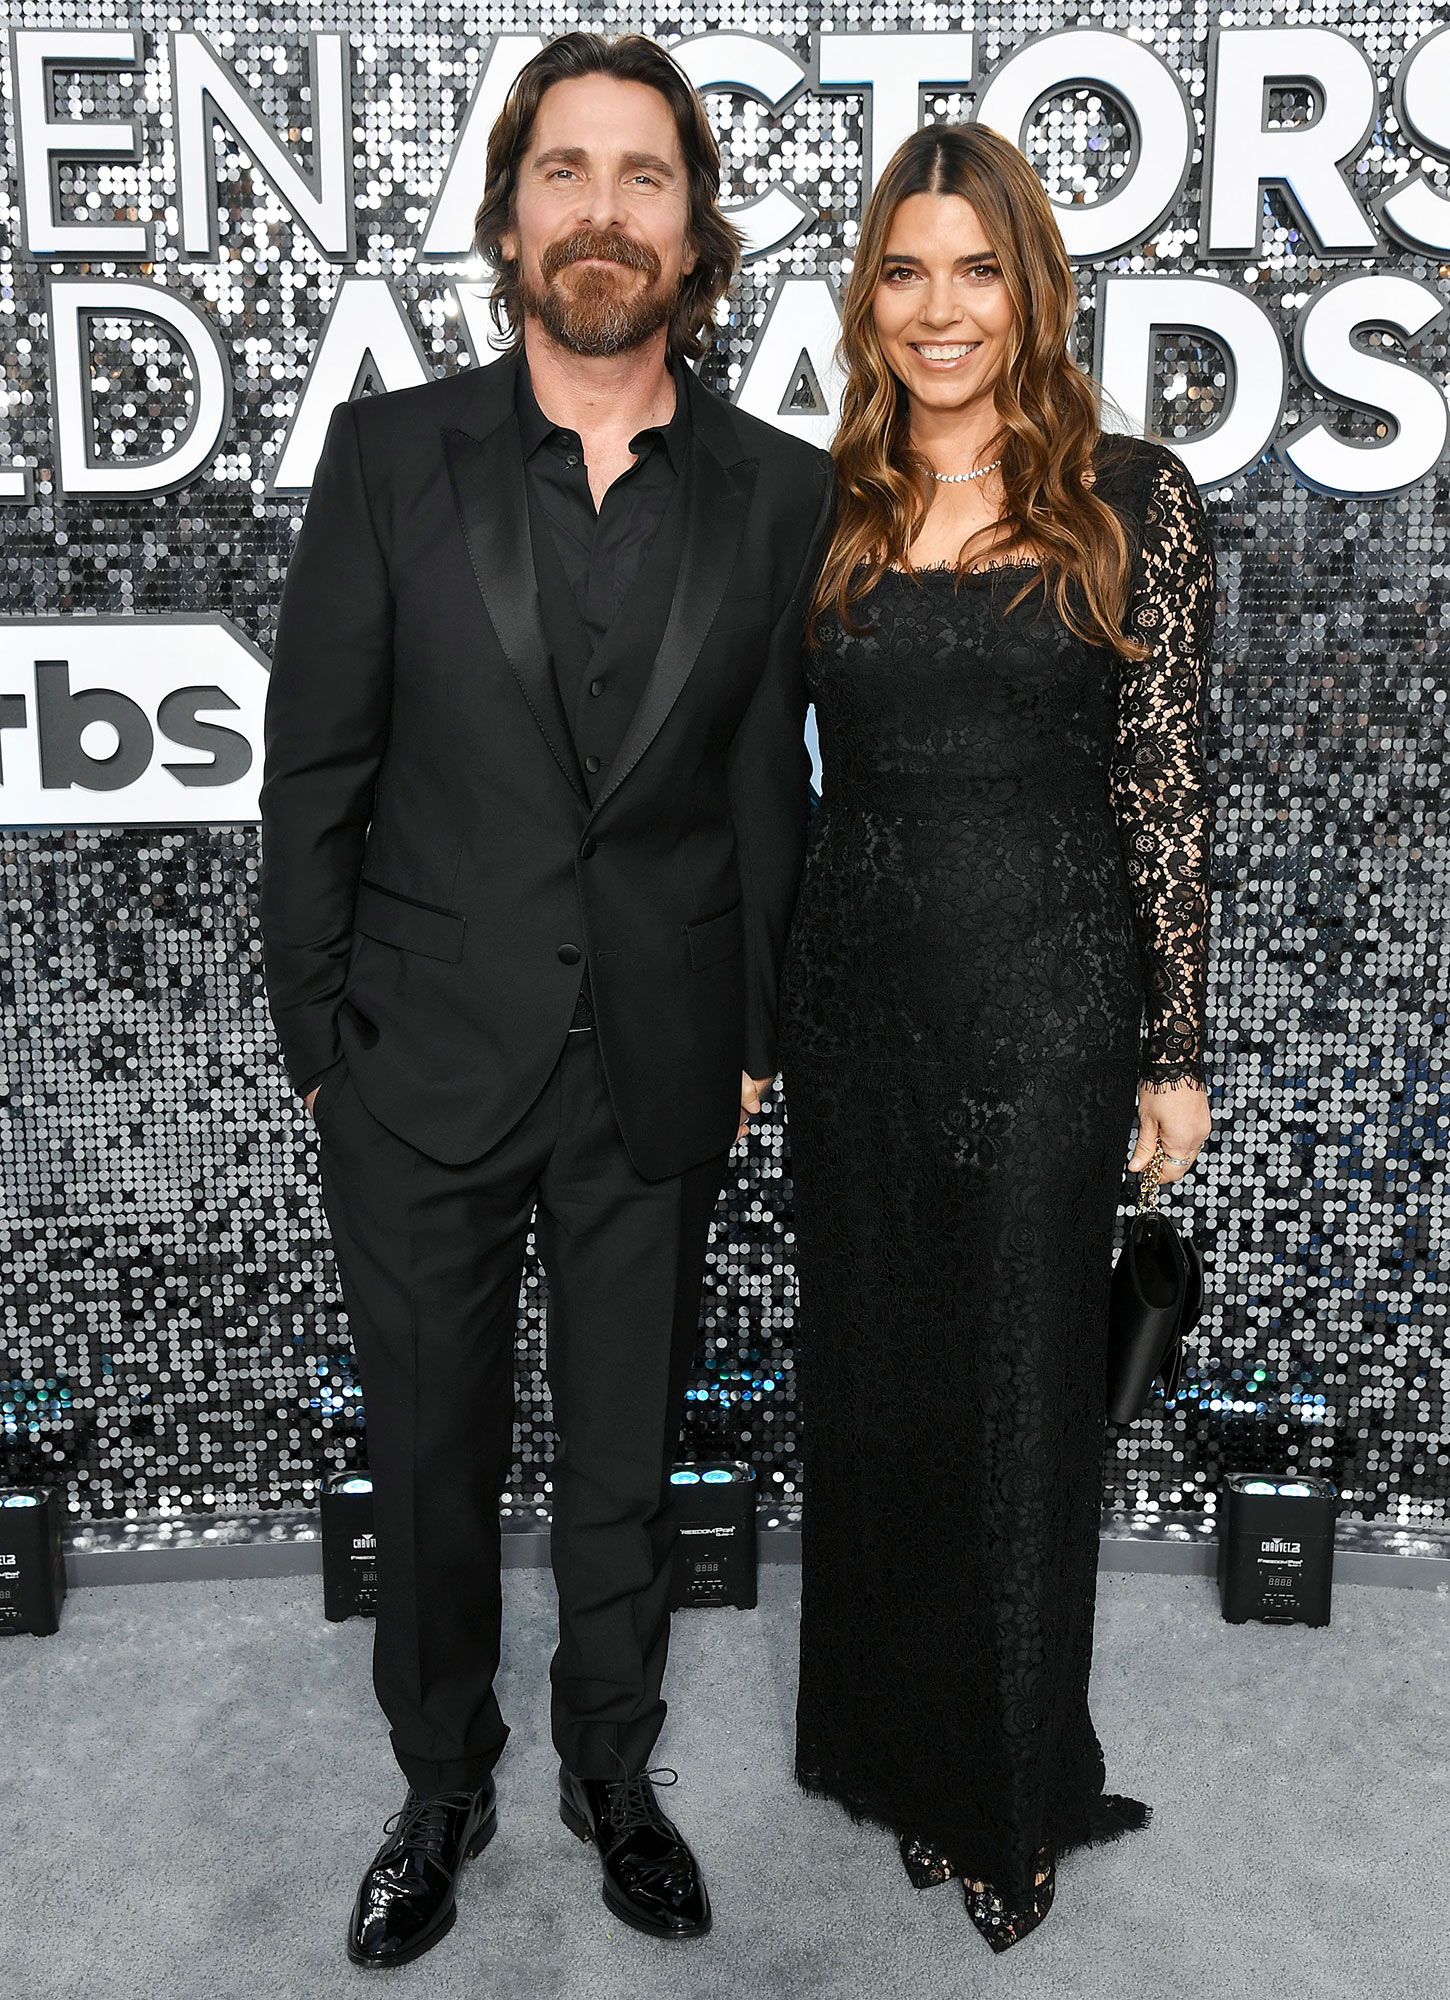 Christian Bale Makes Red Carpet Return With Wife Sibi Blazic at 2020 SAG Awards After Illness